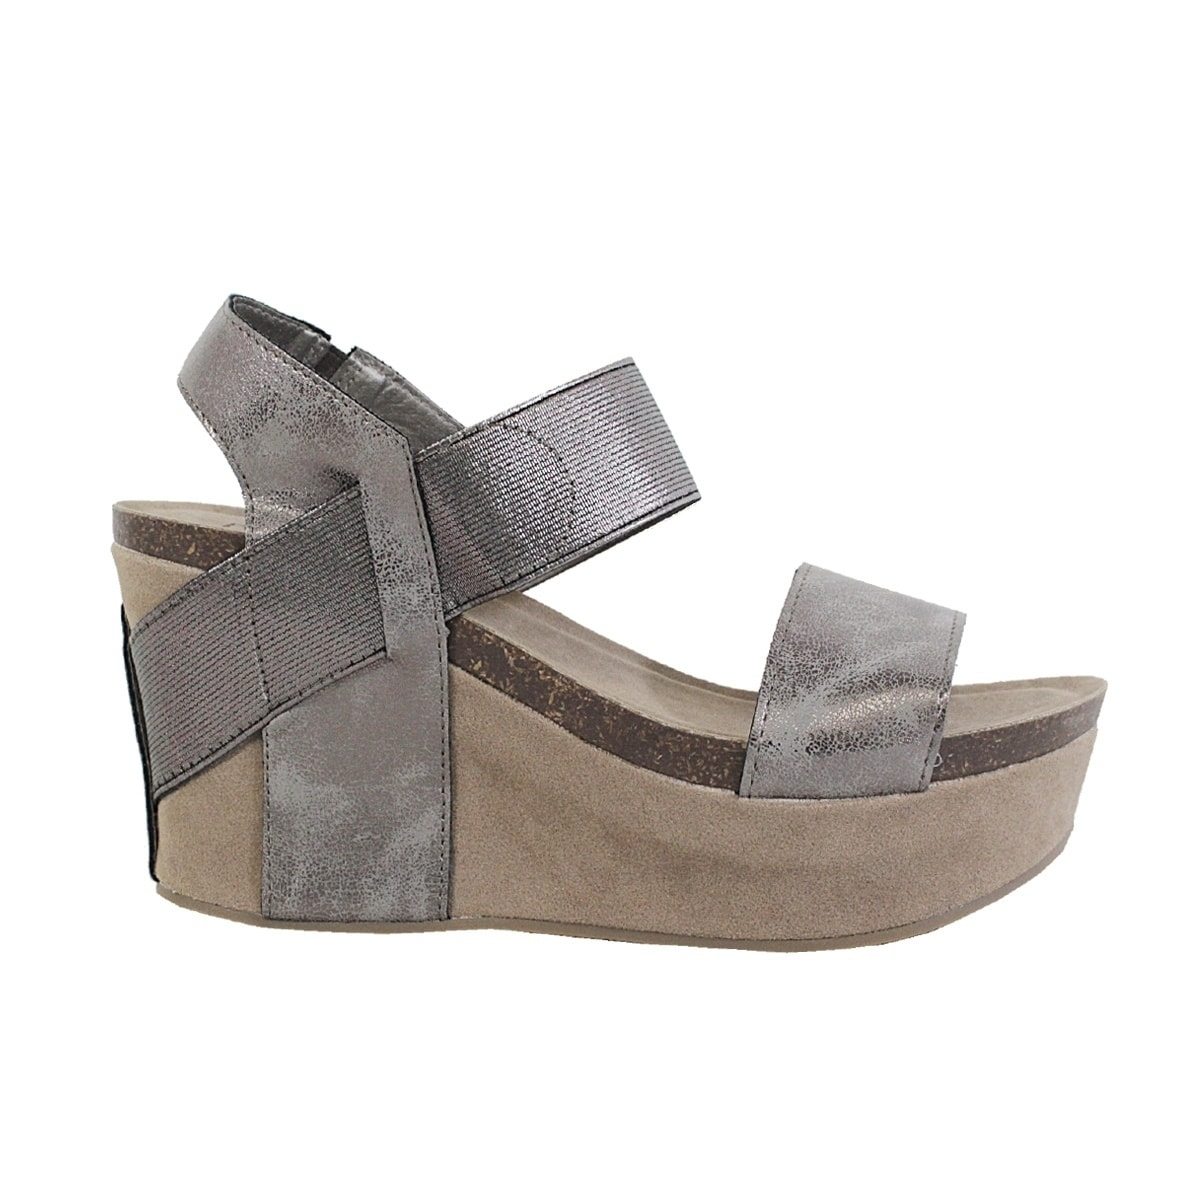 a9fab73f427f Shop YOKI-HESTRY-women s strap footbed wedge - Free Shipping On Orders Over   45 - Overstock - 21022955